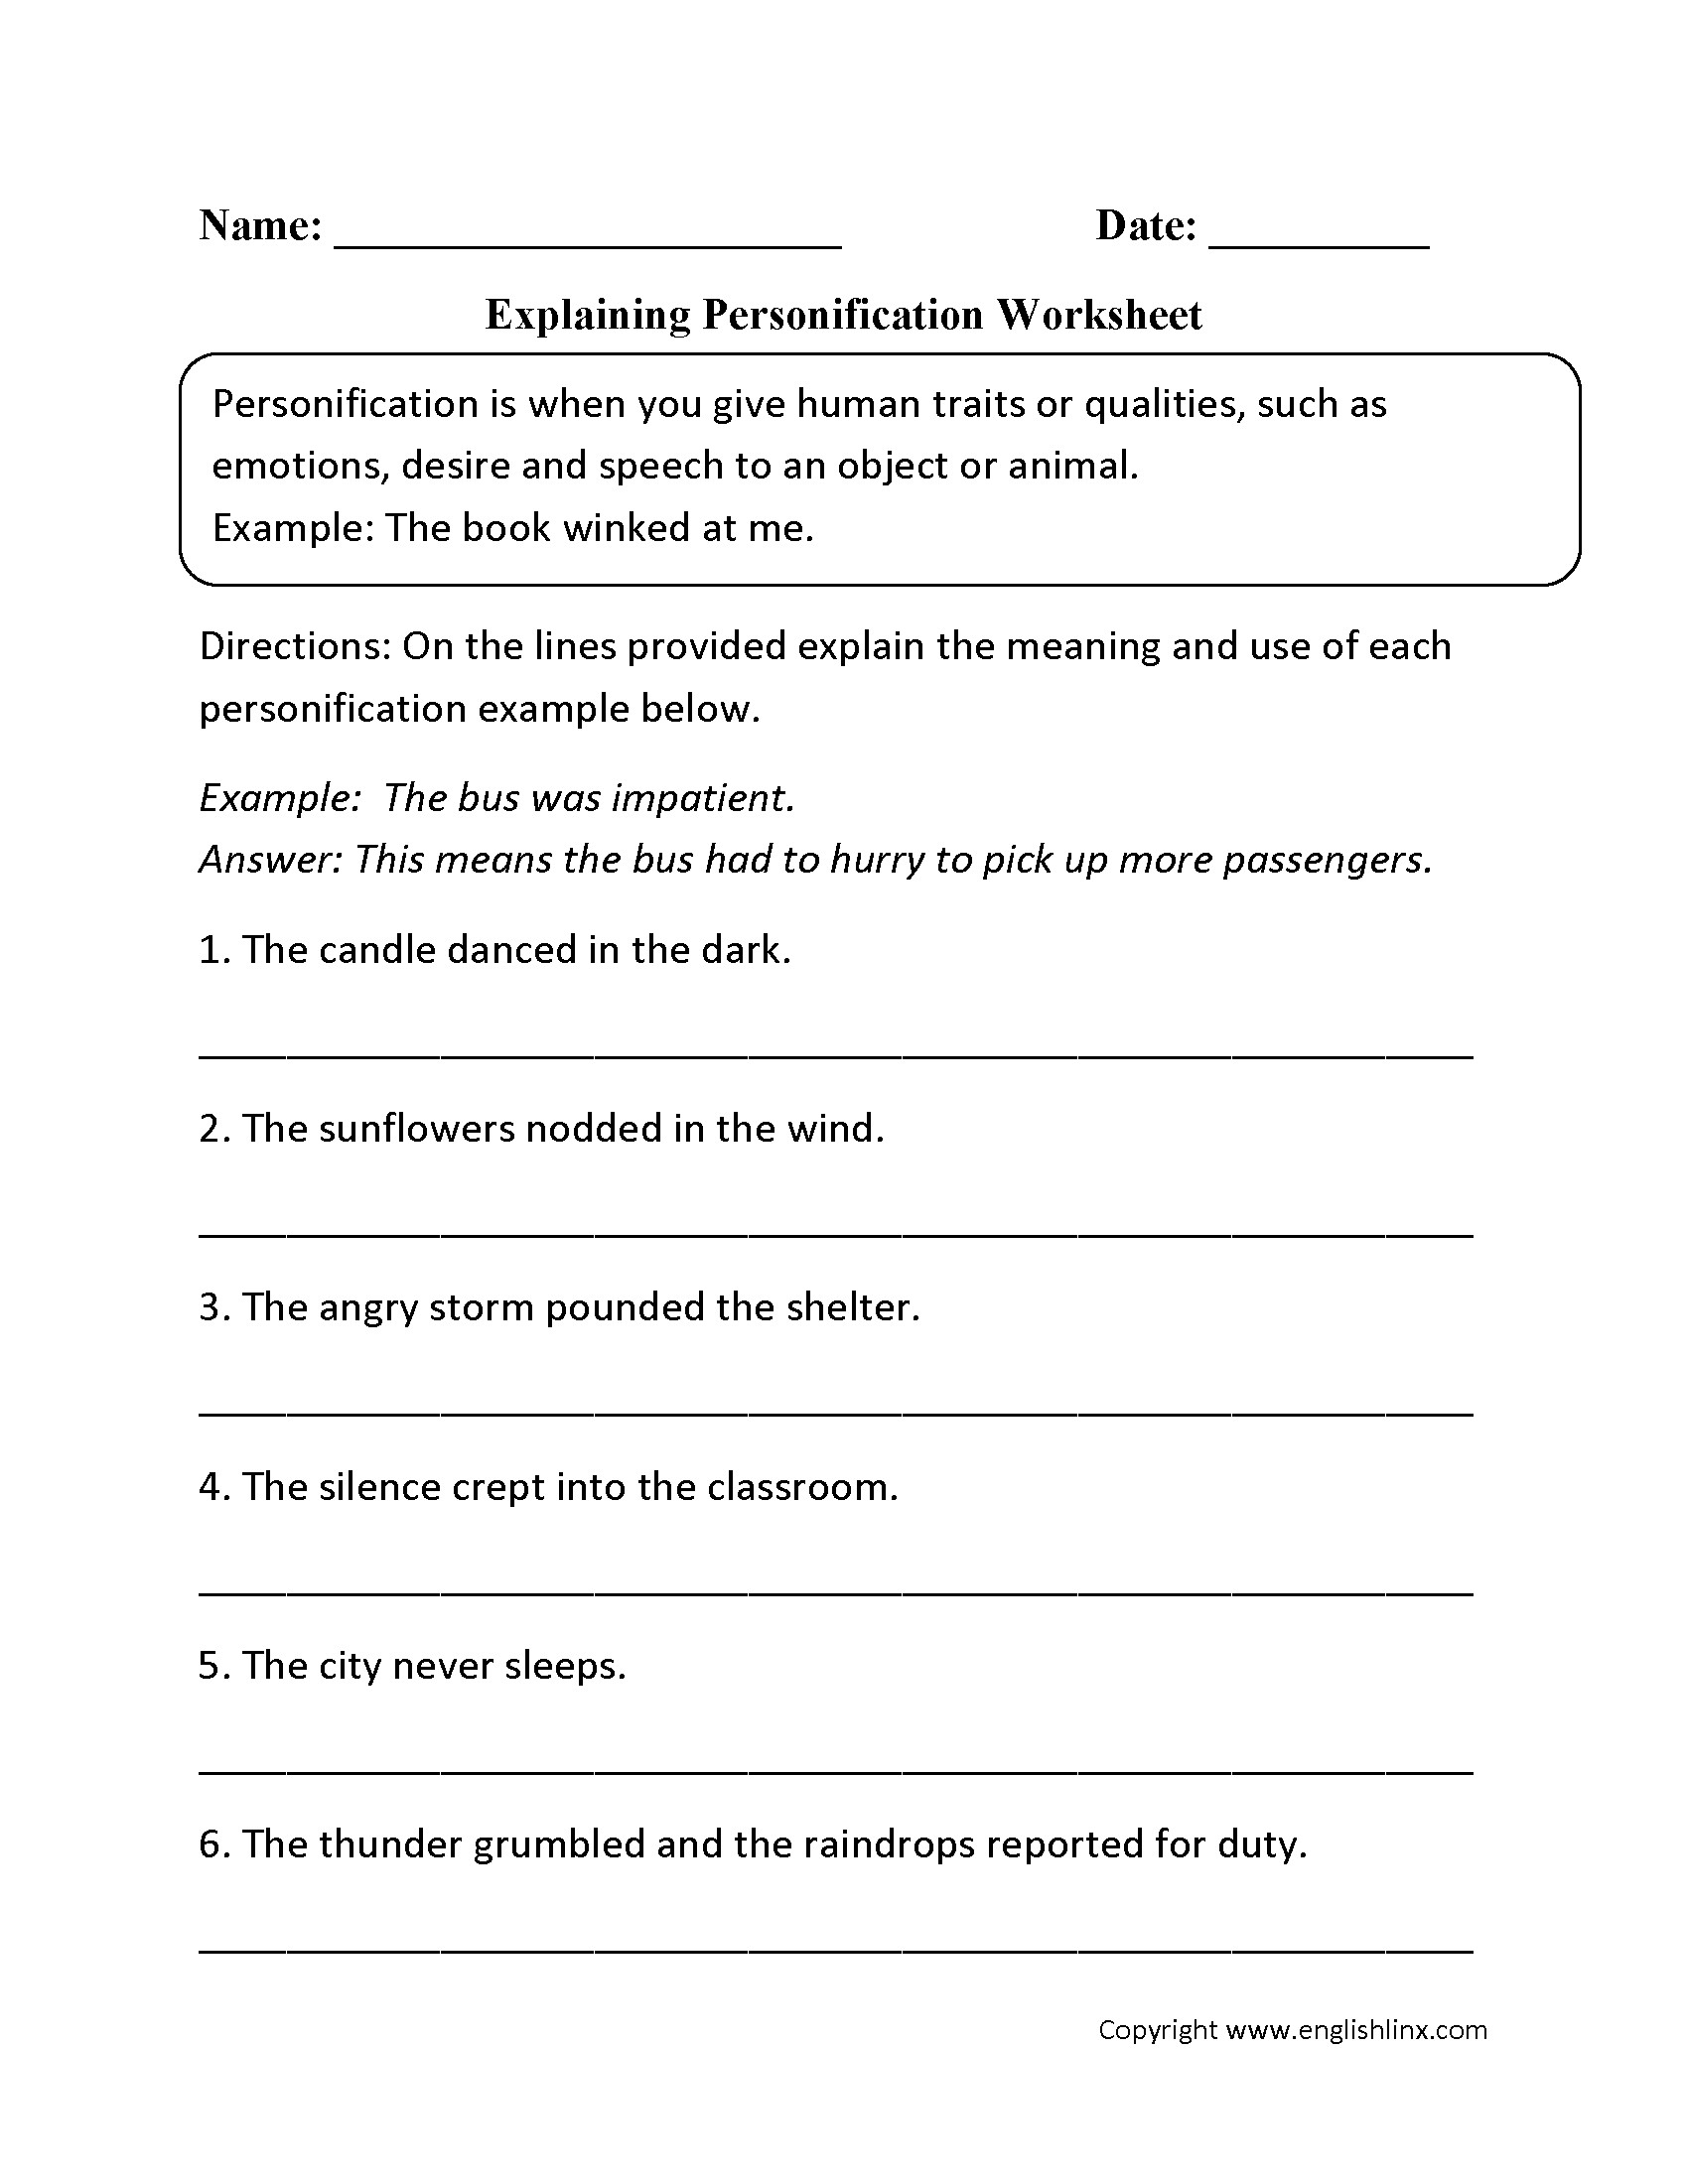 Personification Worksheets for Middle School Identify Figurative Language Worksheets